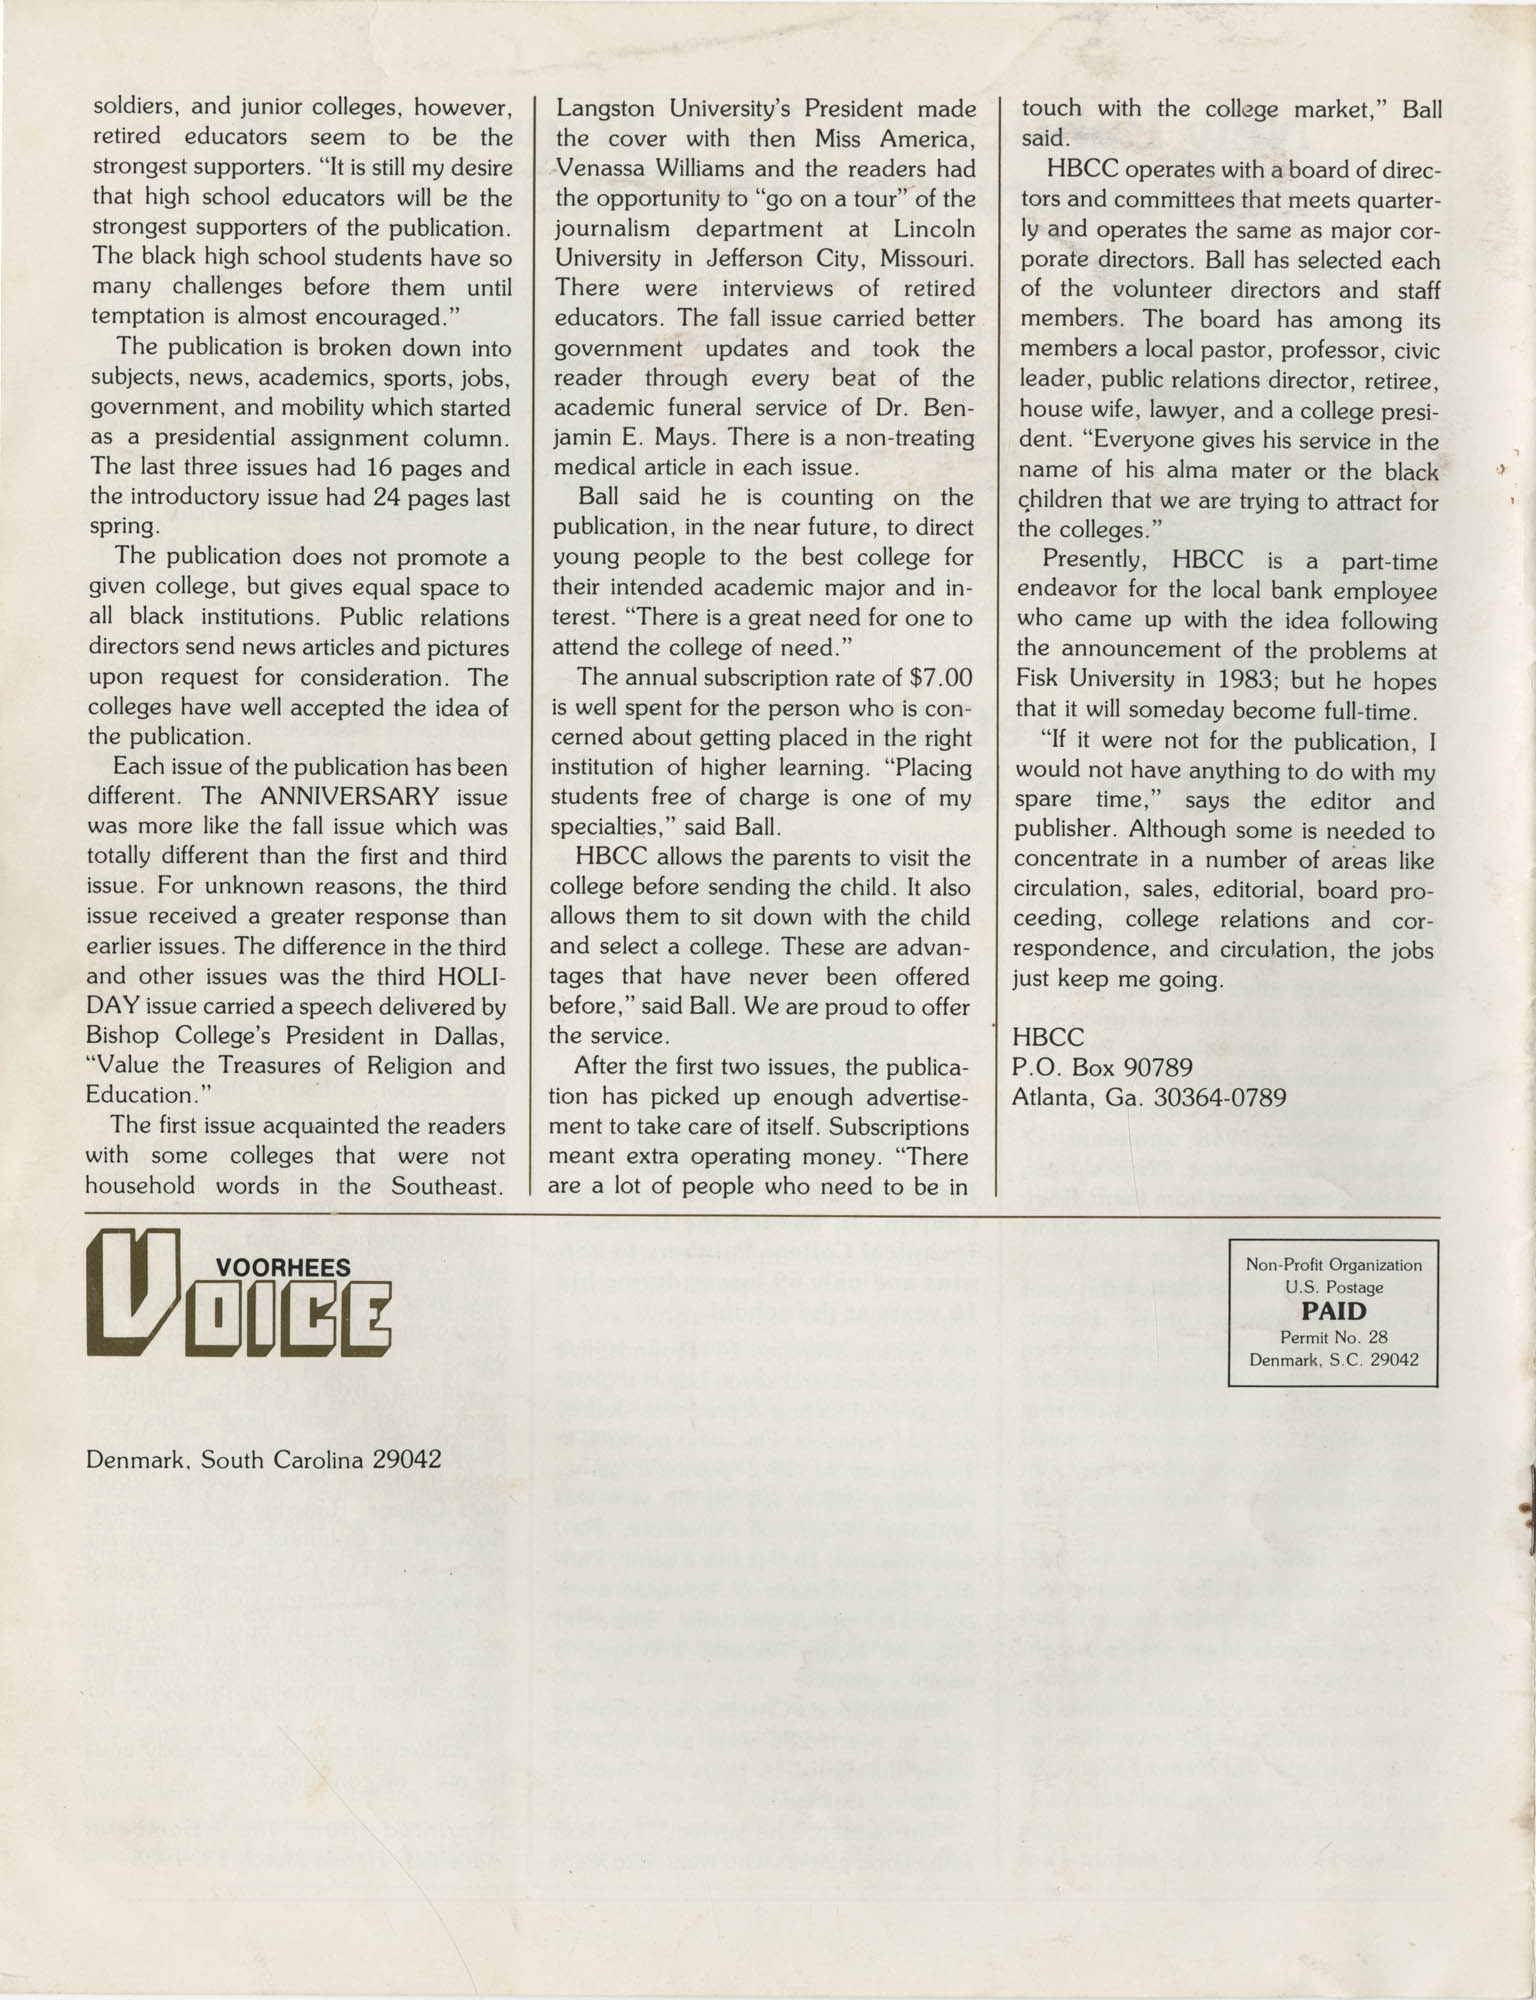 Voorhees Voice, Volume 2, Number 1, April 1985, Back Cover Exterior